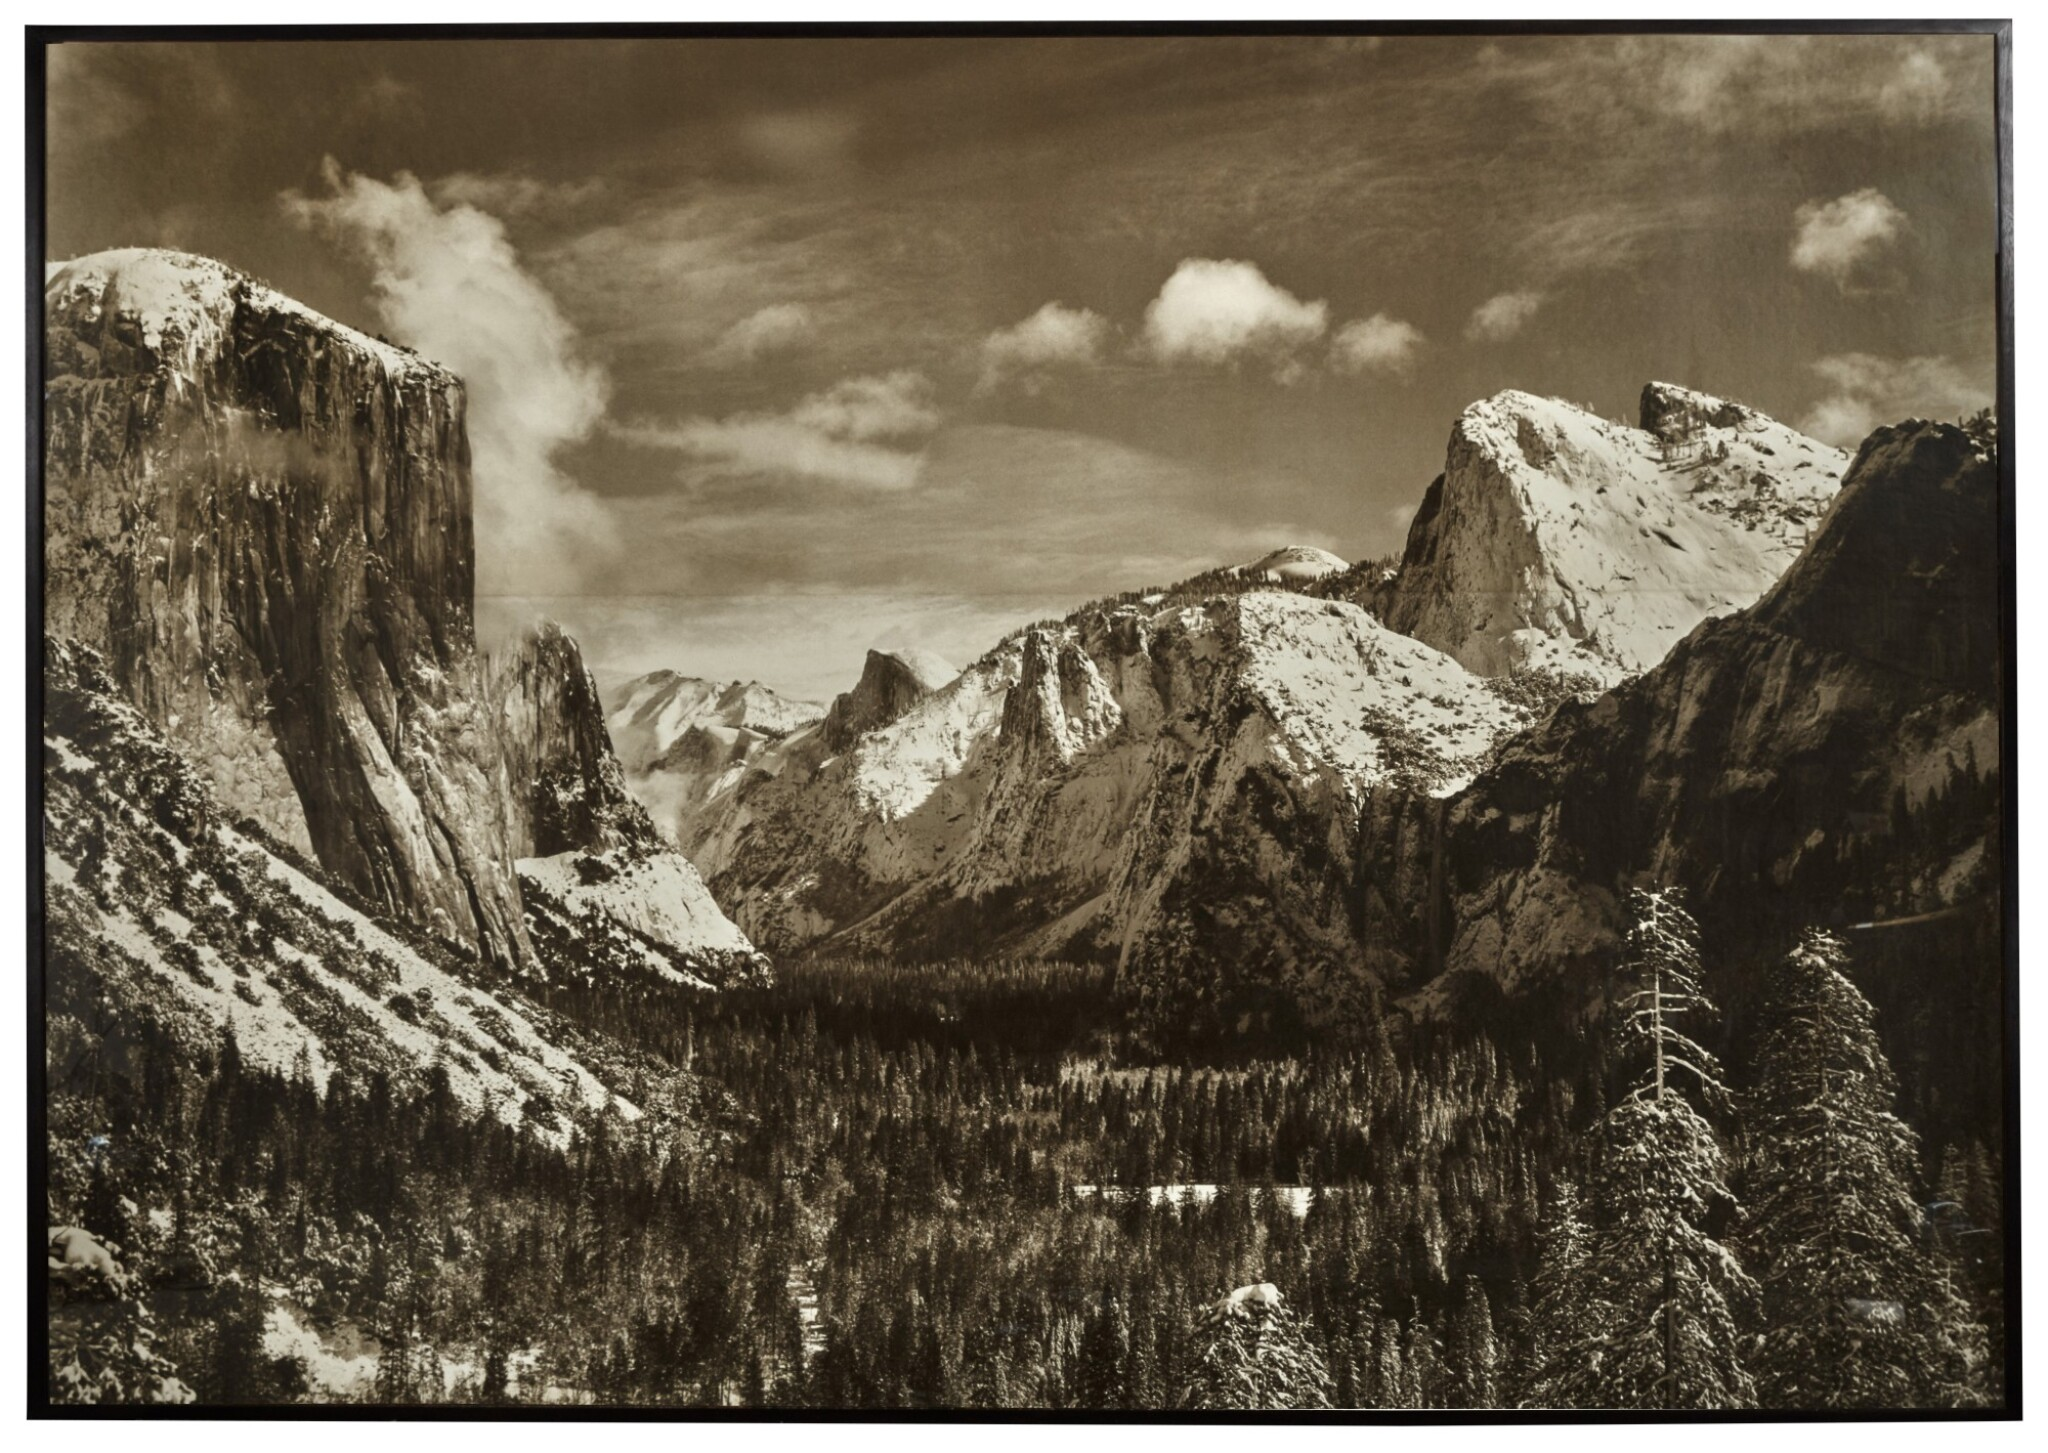 View 1 of Lot 48. Yosemite Valley From Inspiration Point, Winter, Yosemite National Park.